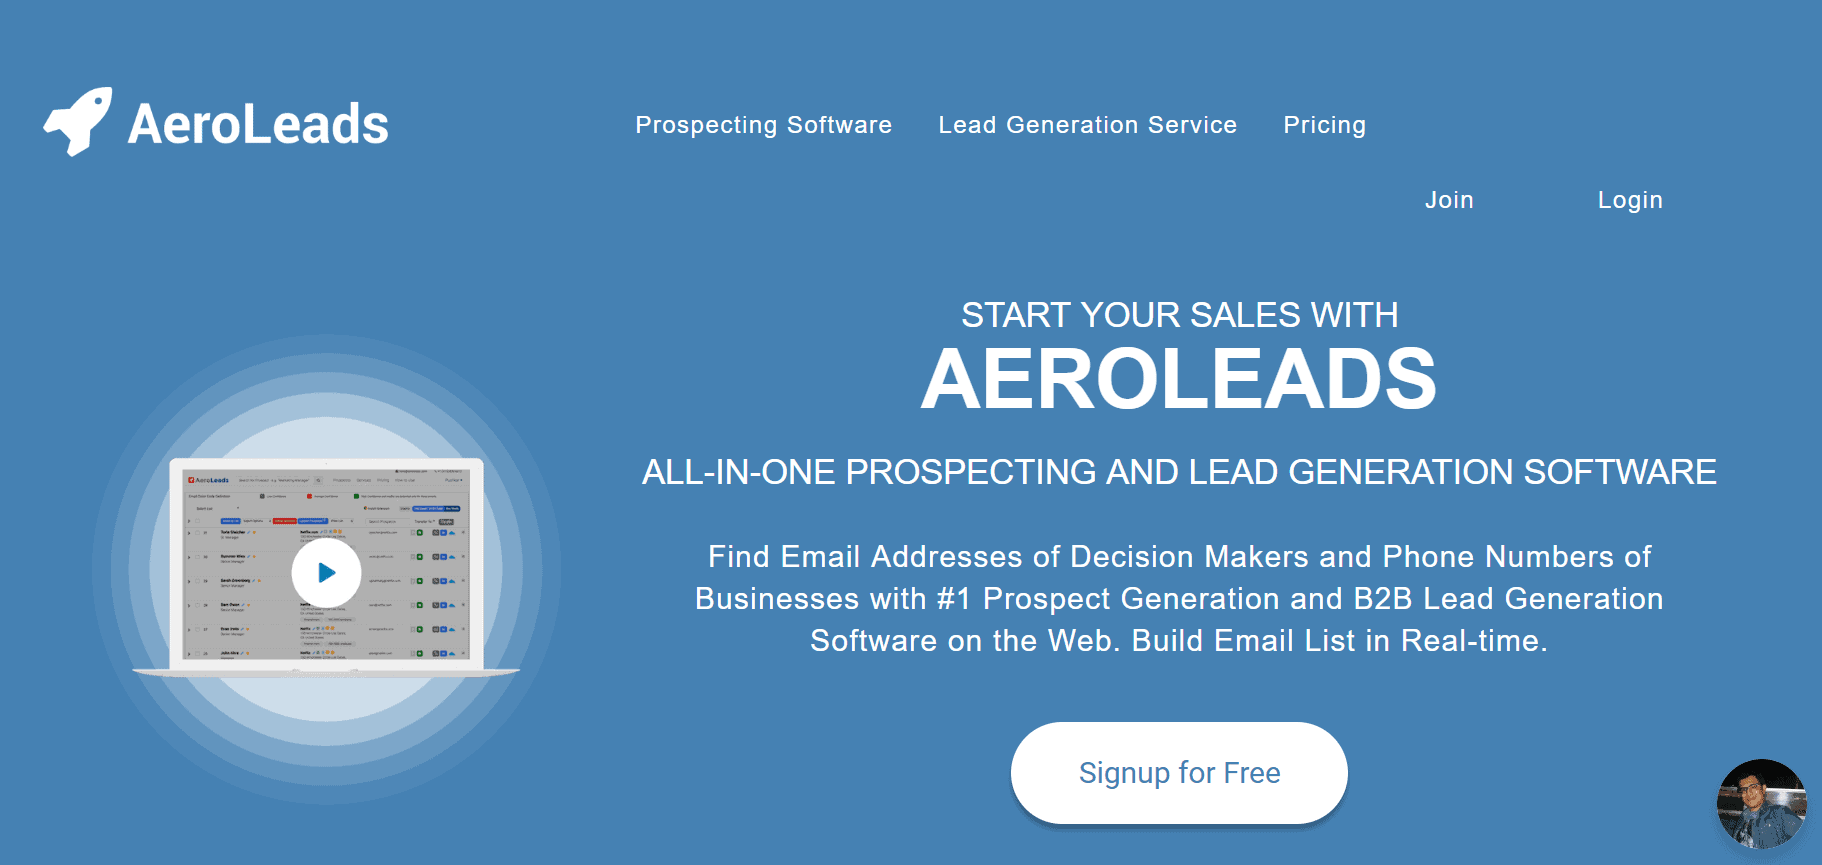 outils prospection b2b aeroleads